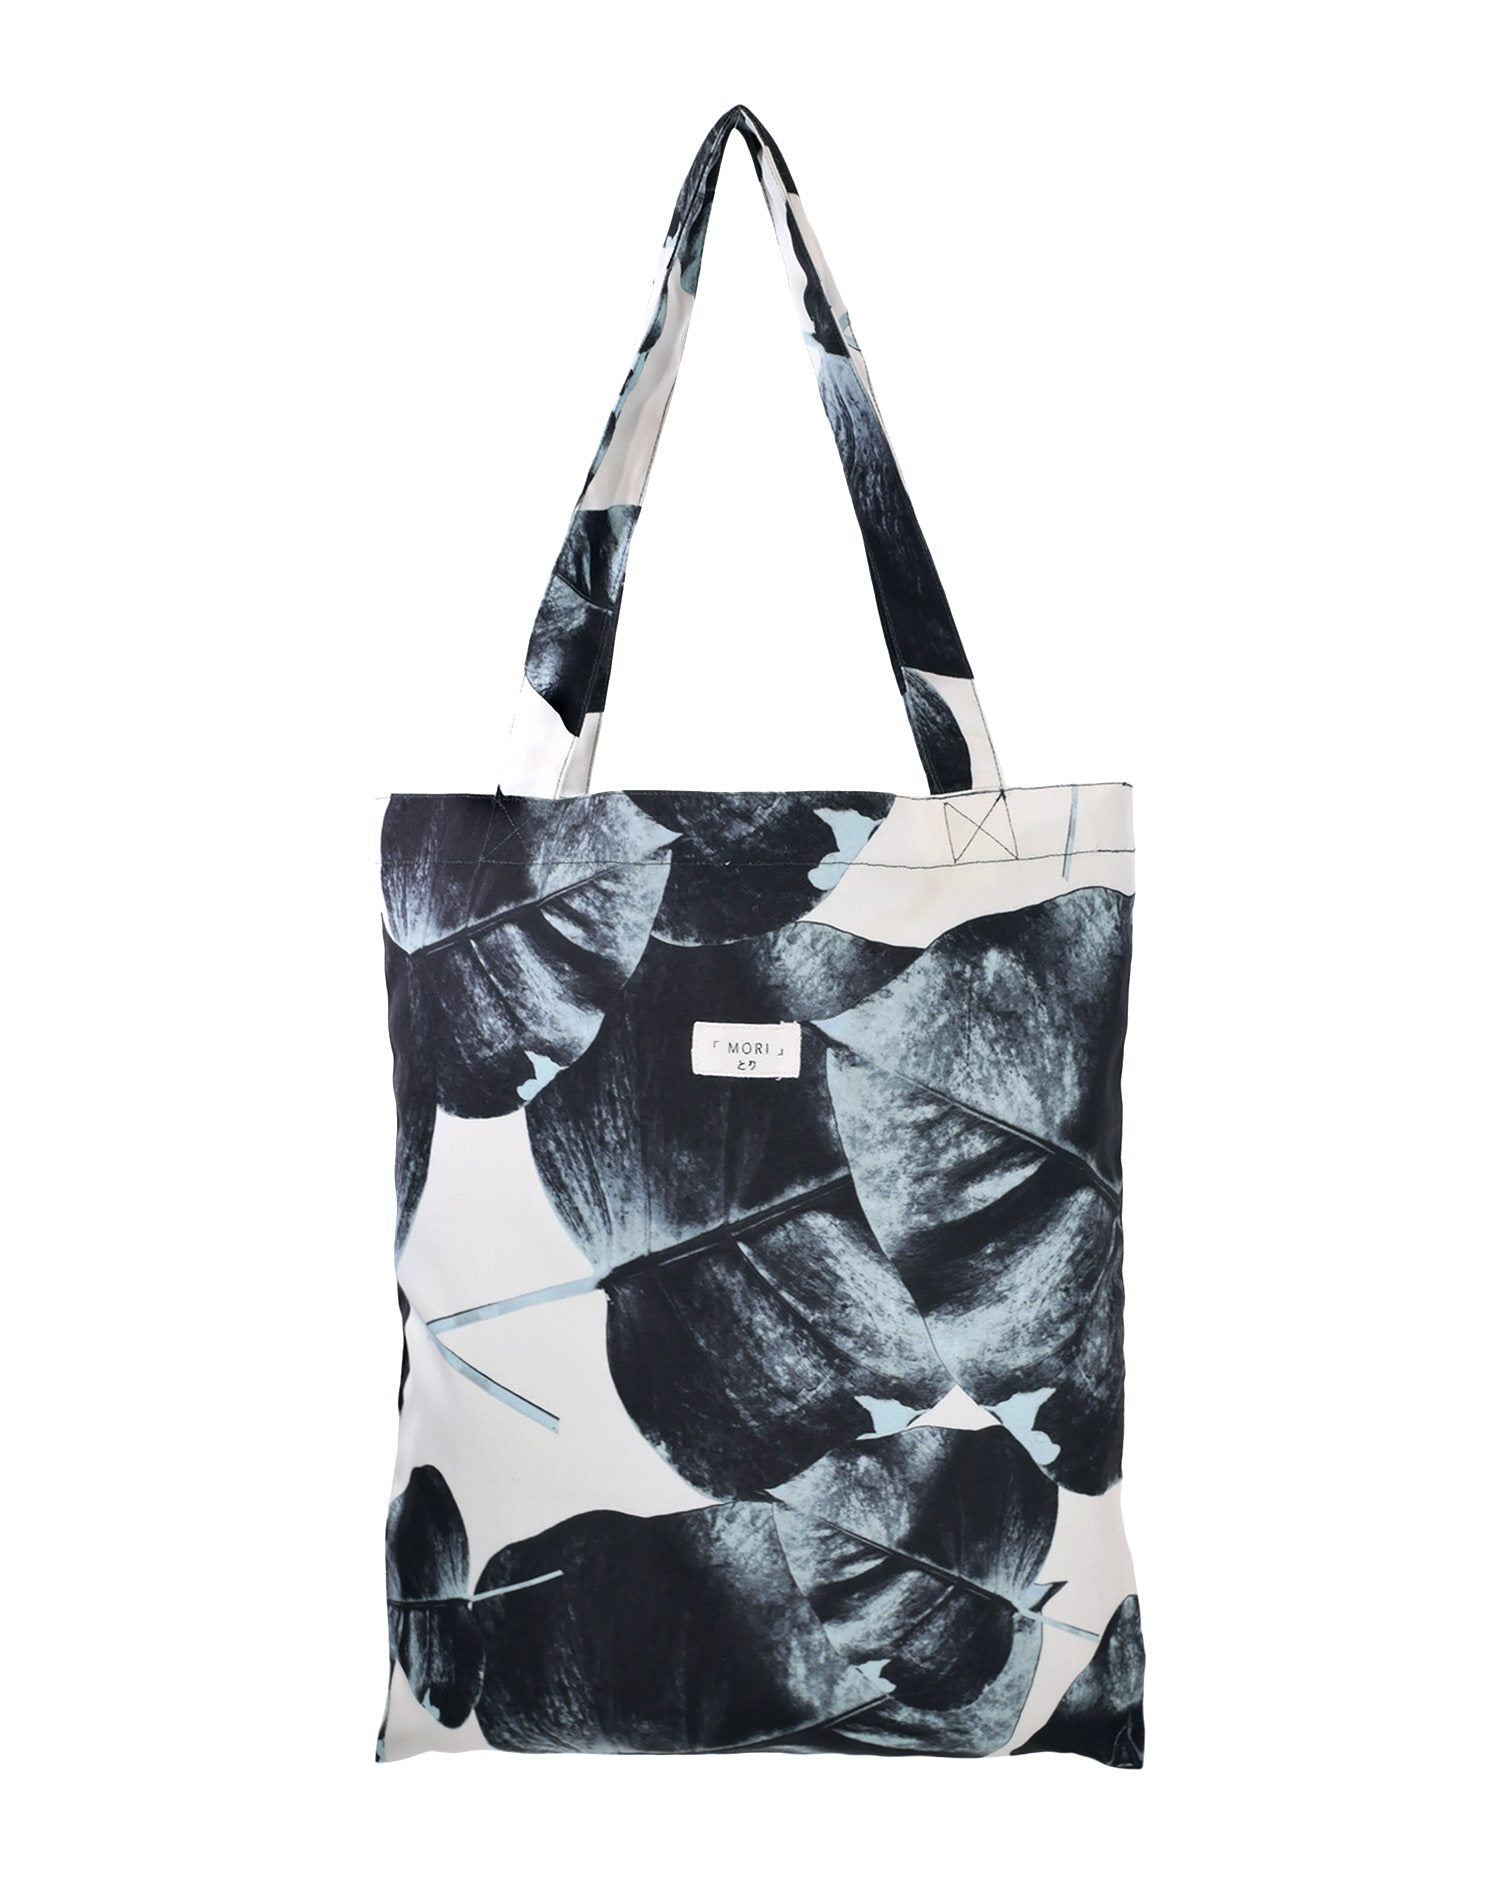 Black Spade Canvas Tote Bag.黑桃帆布側背袋